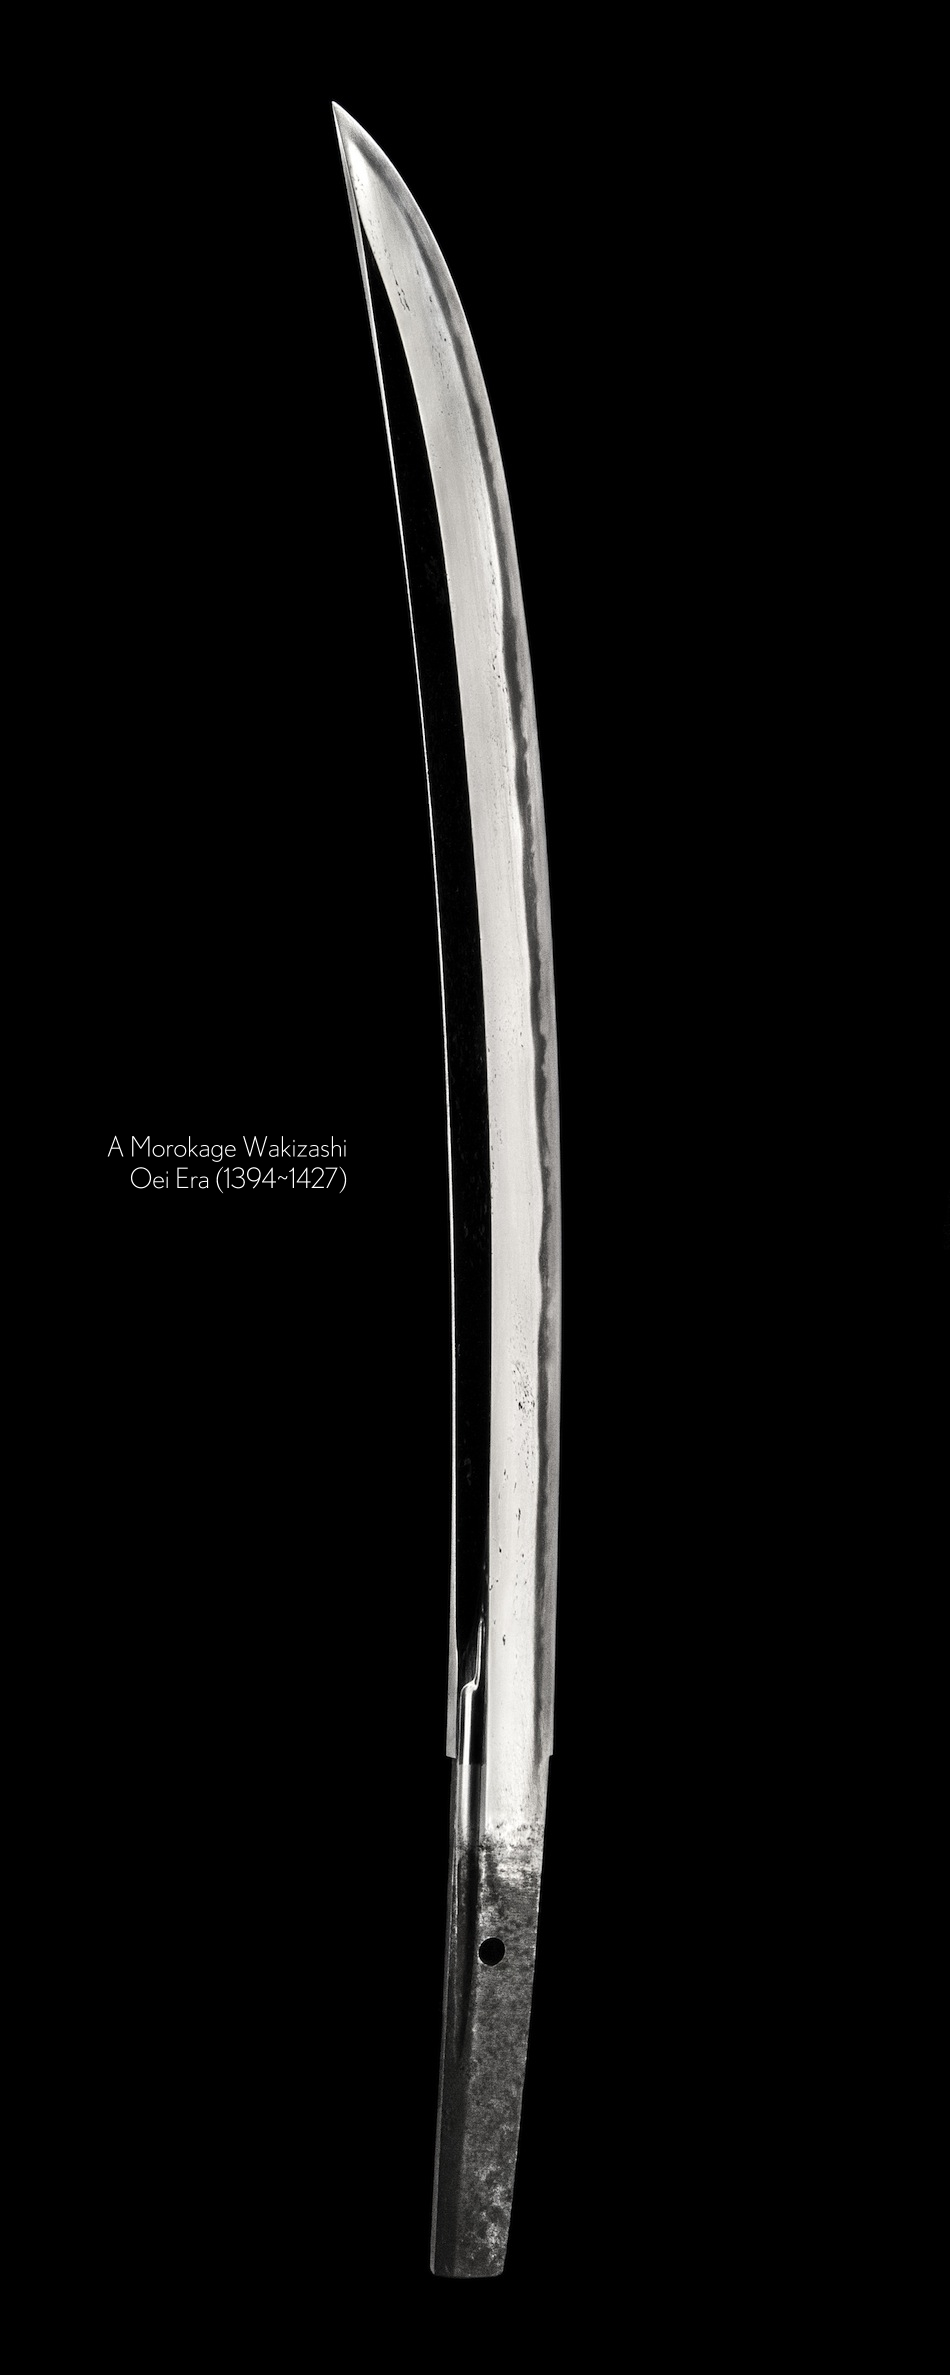 A Morokage Wakizashi from Unique Japan